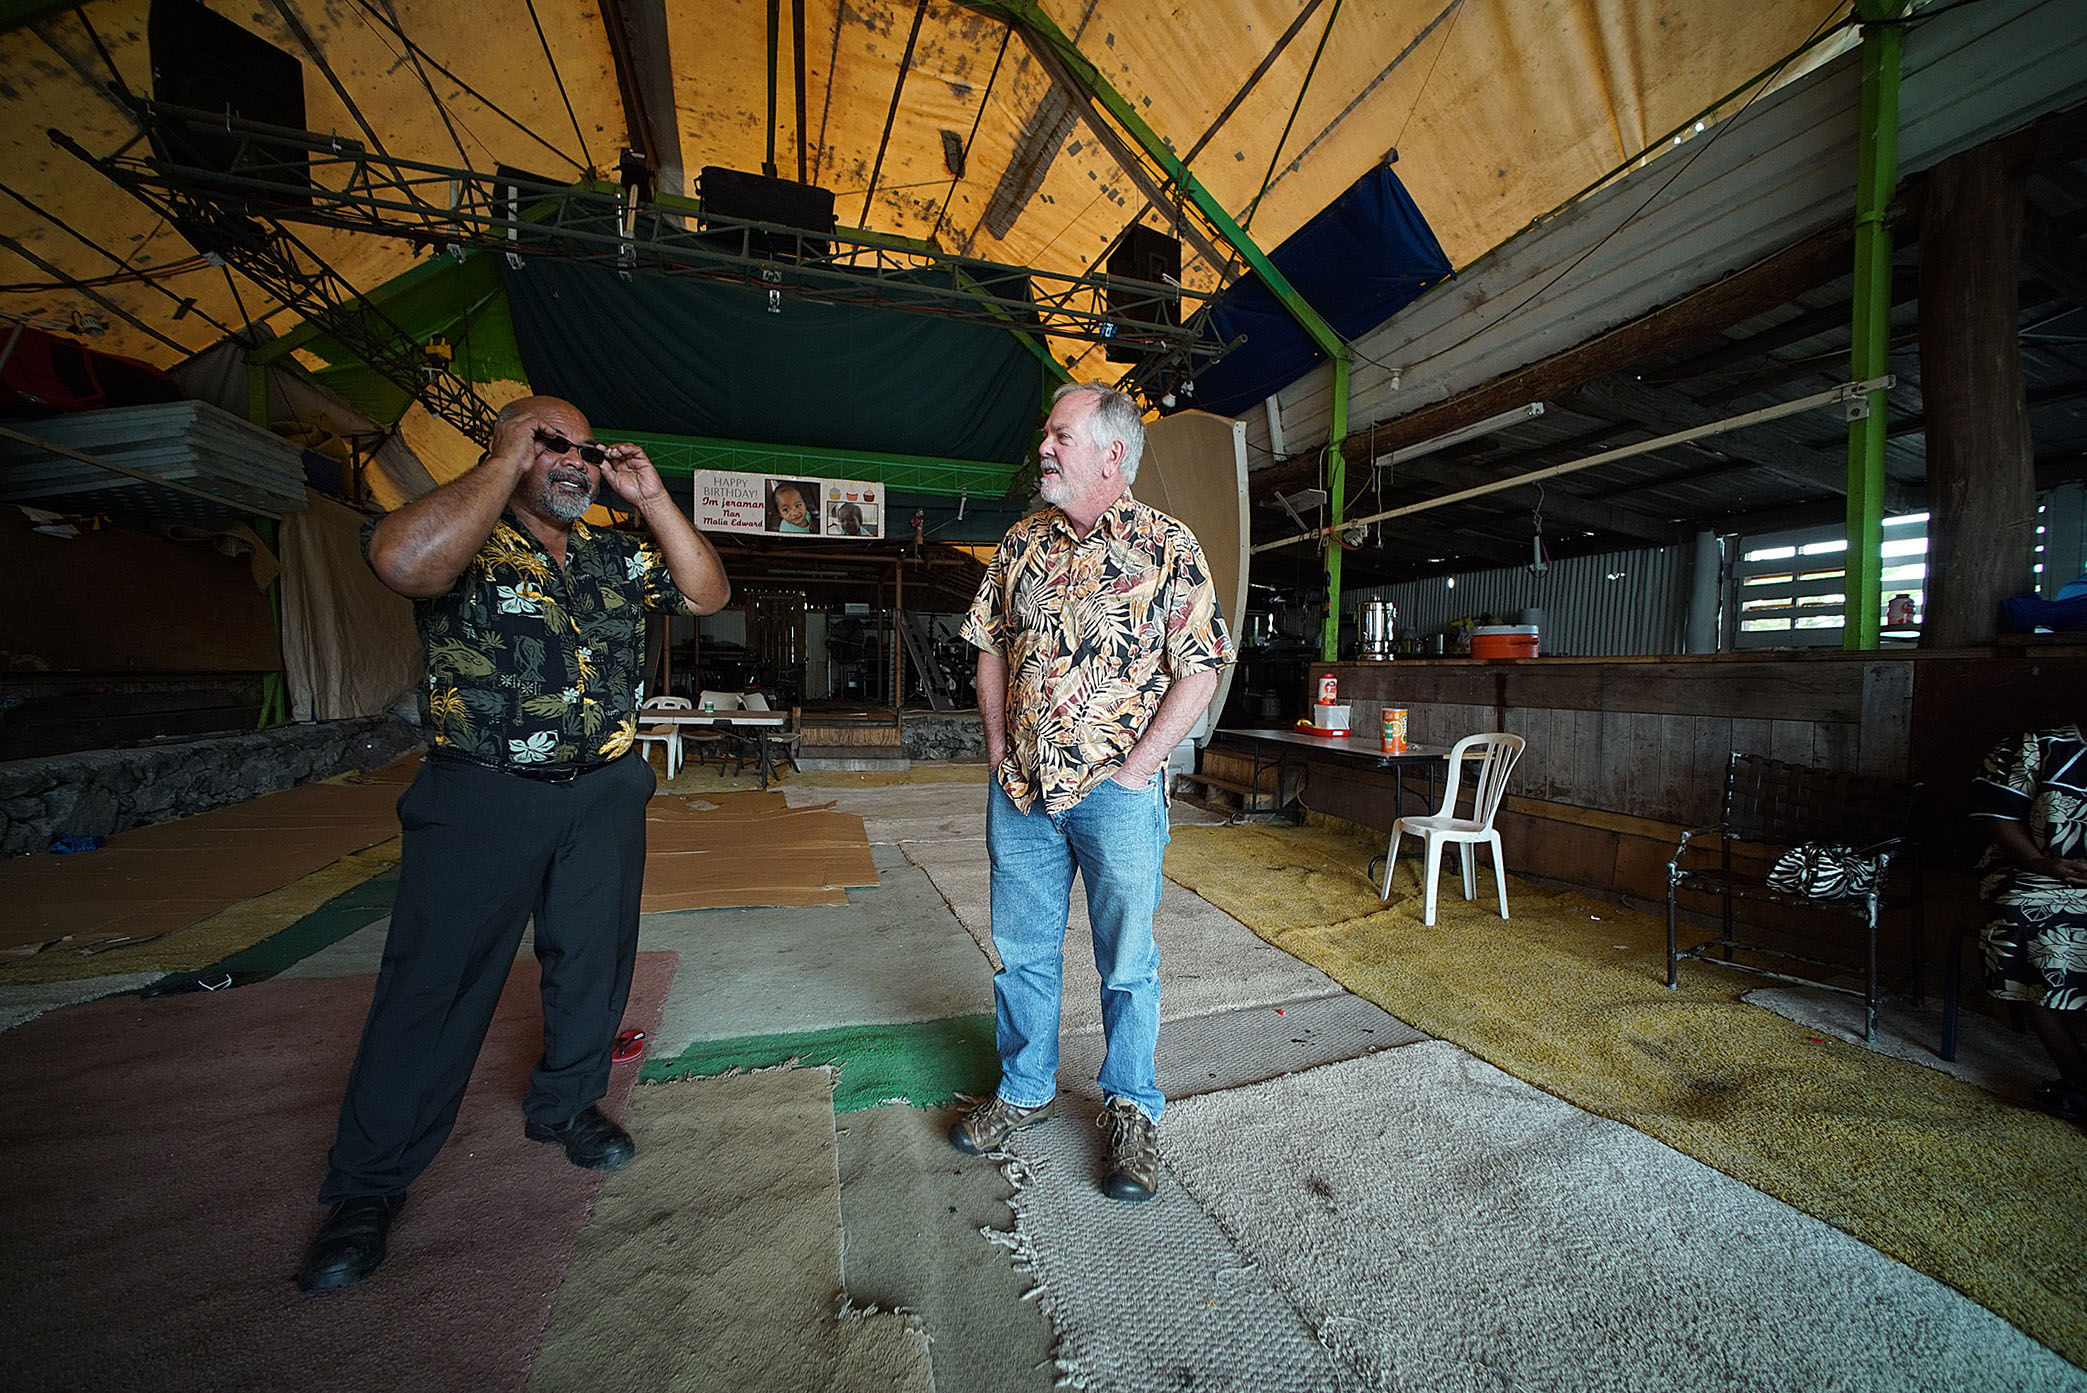 <p>Jonithen Jackson, left, with state Rep. Richard Creagan, at Jackson's studio and gathering place on the Big Island. Creagan is a former Peace Corps volunteer in the Marshall Islands.</p>